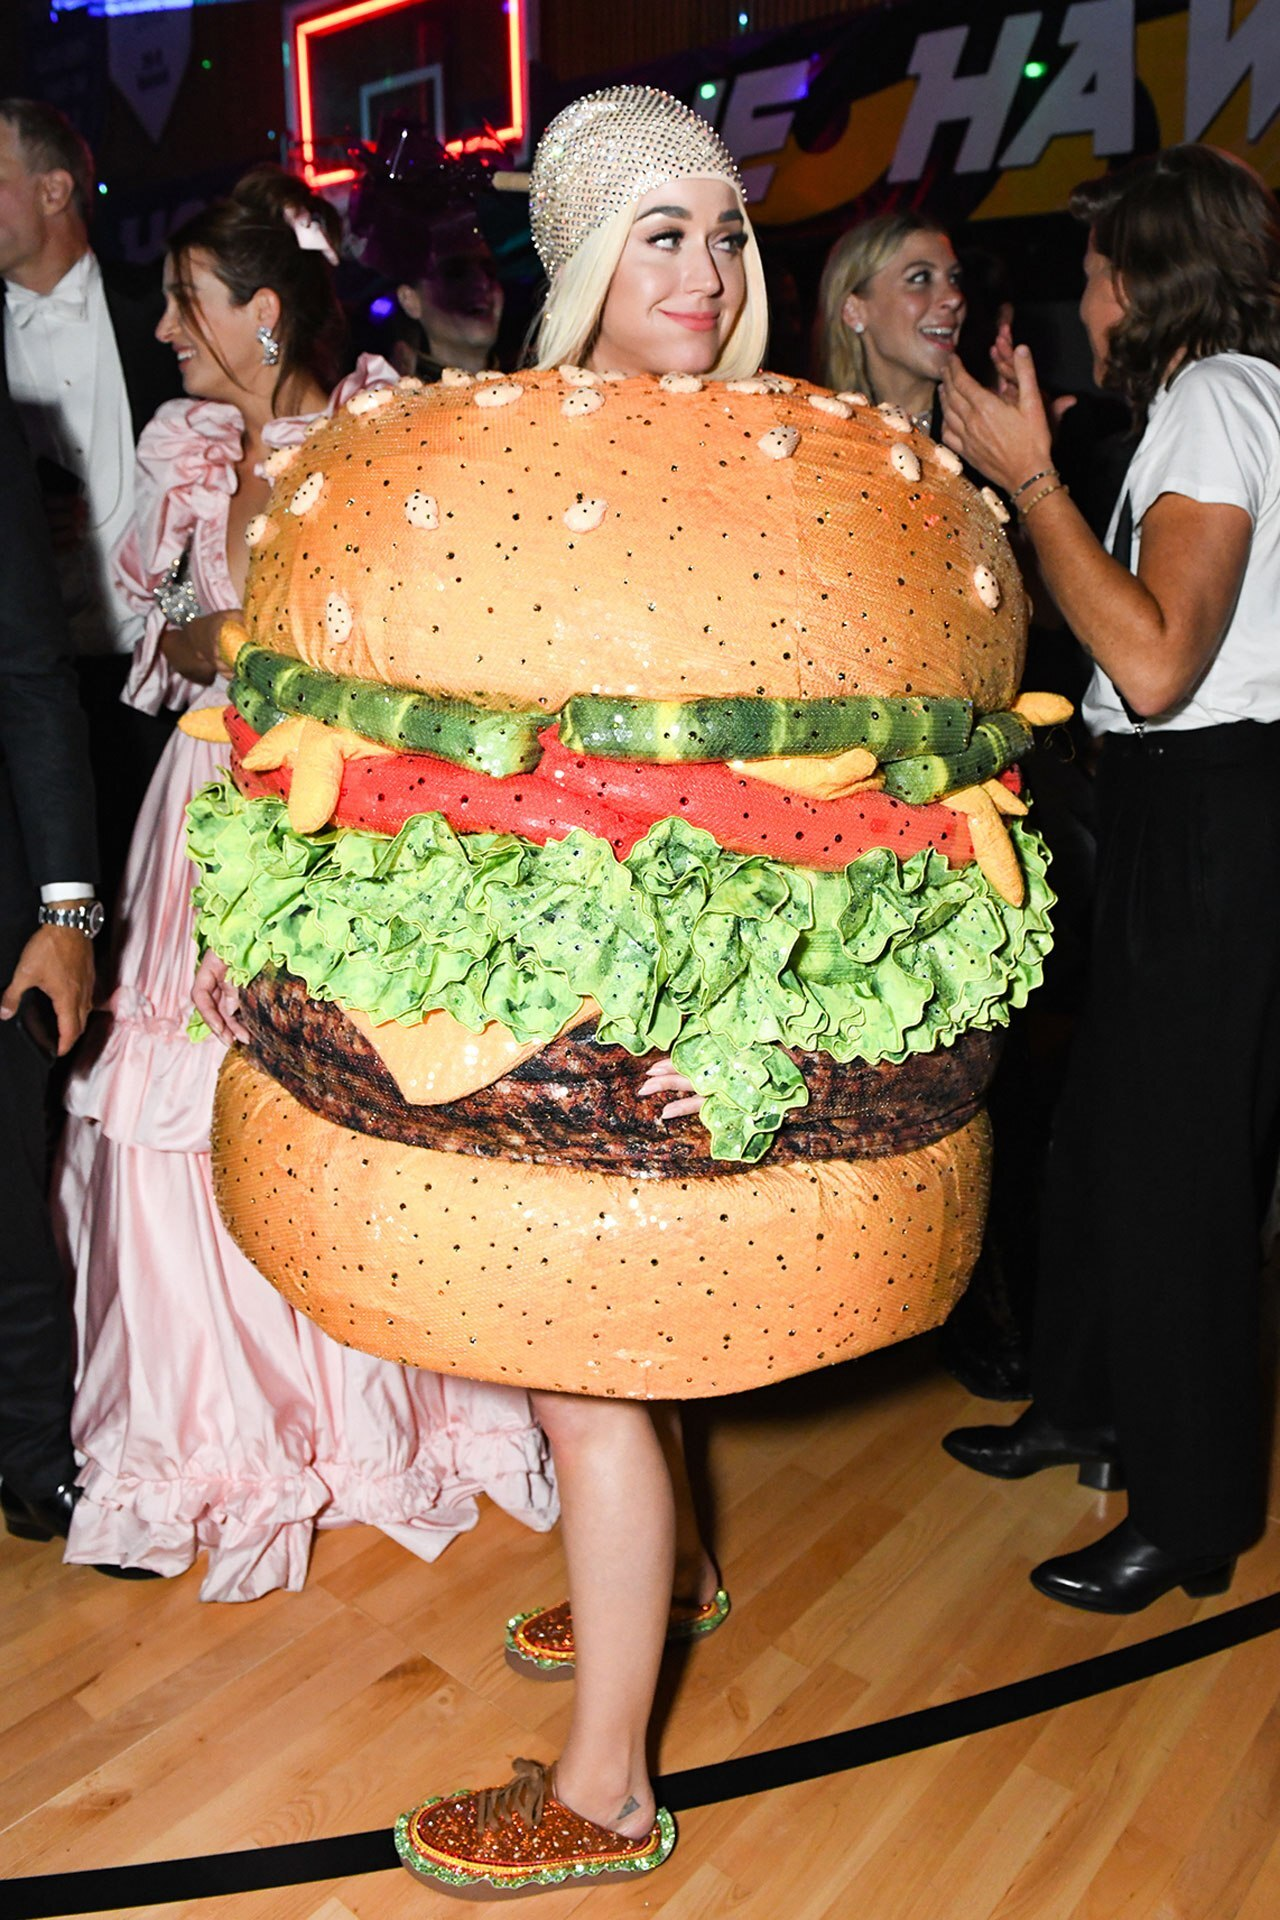 Katy Perry pulls out her Met Gala burger costume for Taylor Swift